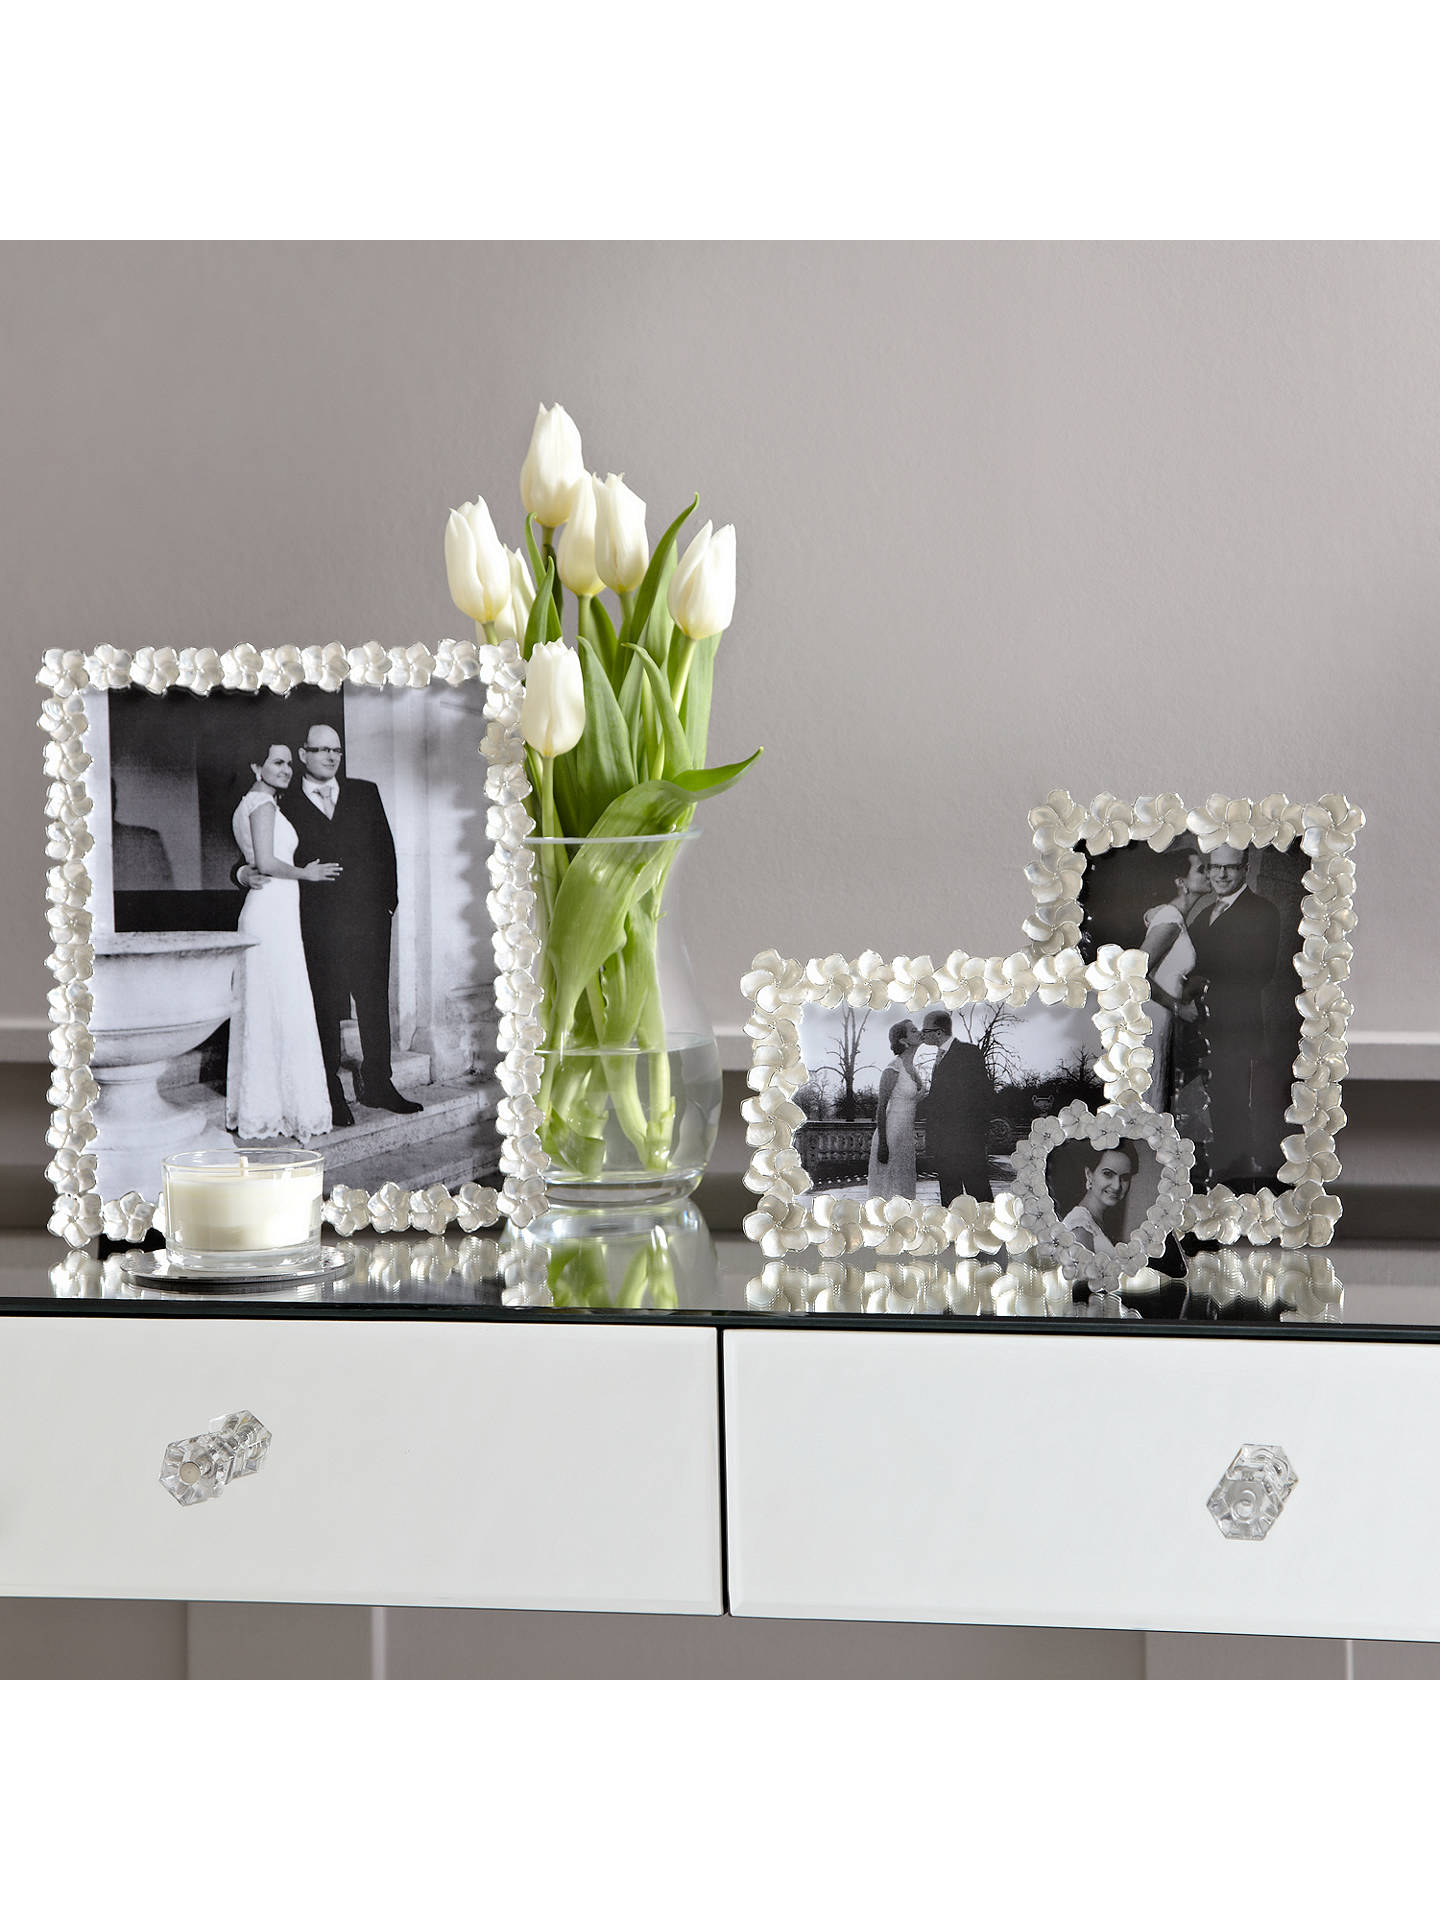 BuyJohn Lewis & Partners Petal Heart Photo Frame, Ivory, 6 x 6cm Online at johnlewis.com